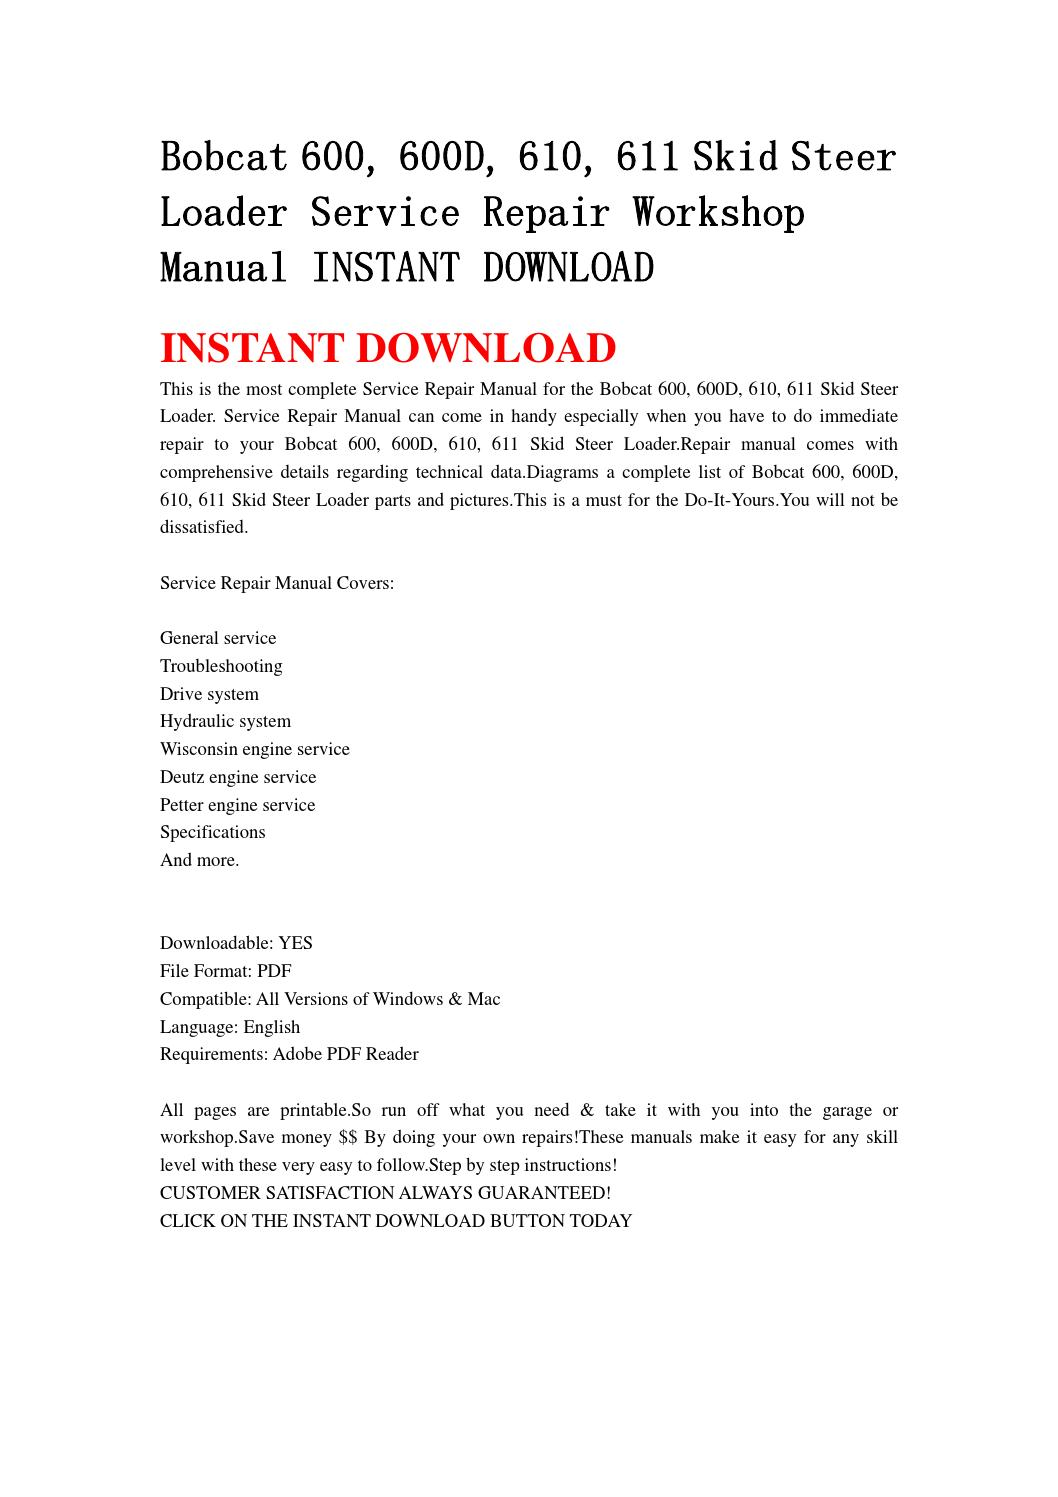 Bobcat 611 Manual Engine Mount Diagram And Parts List For Murray Walkbehindlawnmower Array 600 600d 610 Skid Steer Loader Service Repair Workshop Rh Issuu Com